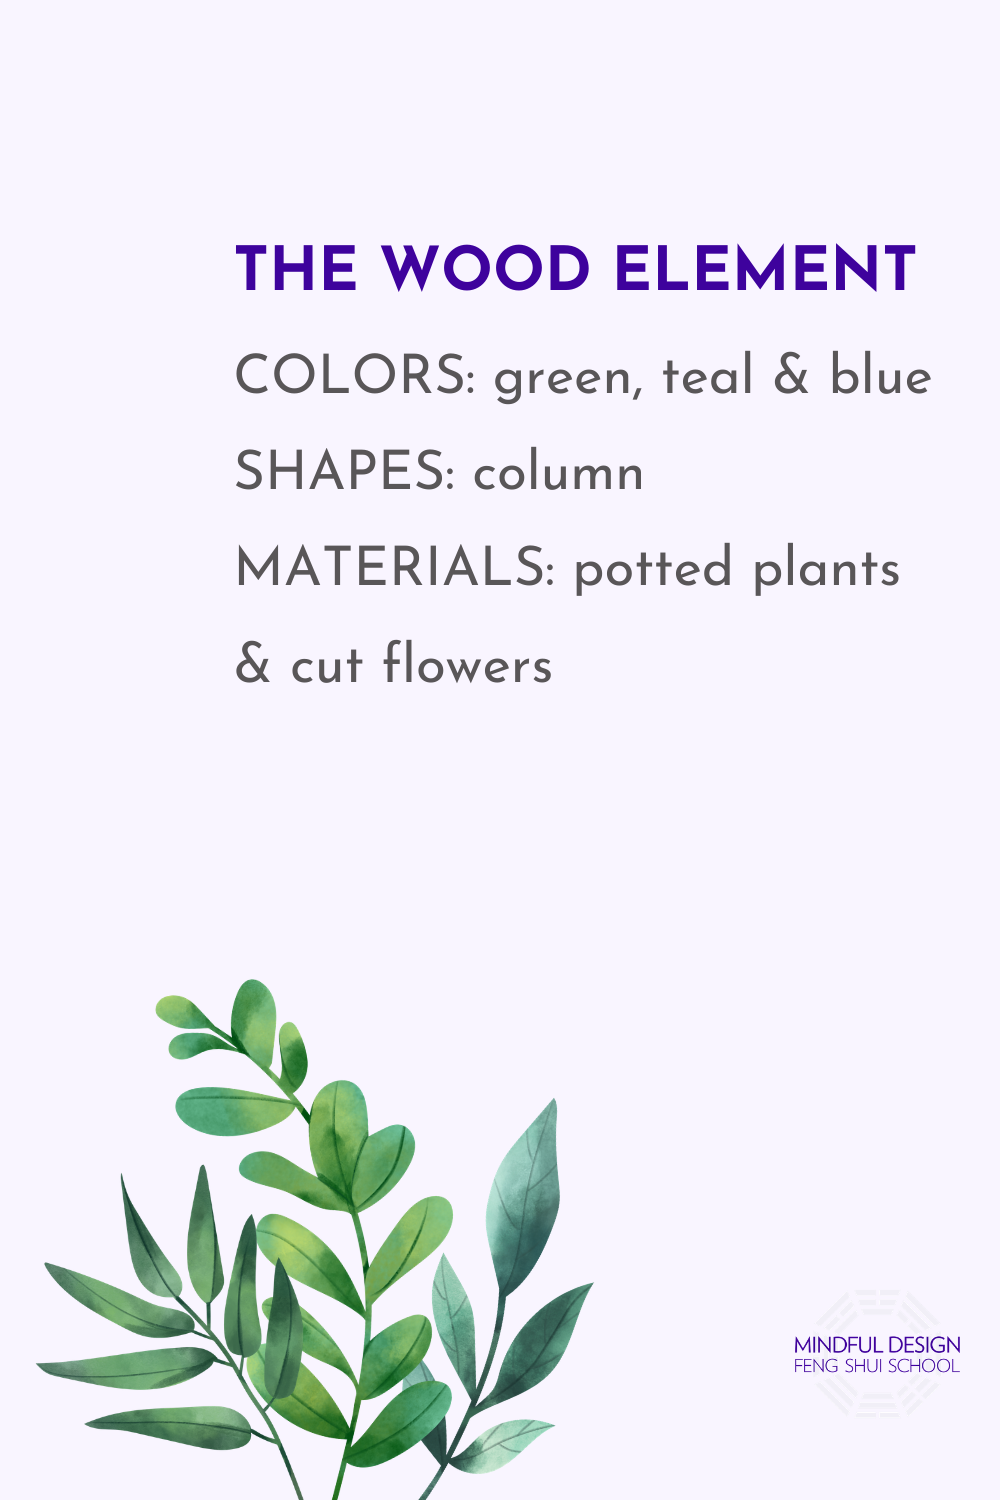 The Wood Element In Feng Shui Mindful Design Feng Shui School Feng Shui Mindfulness Design